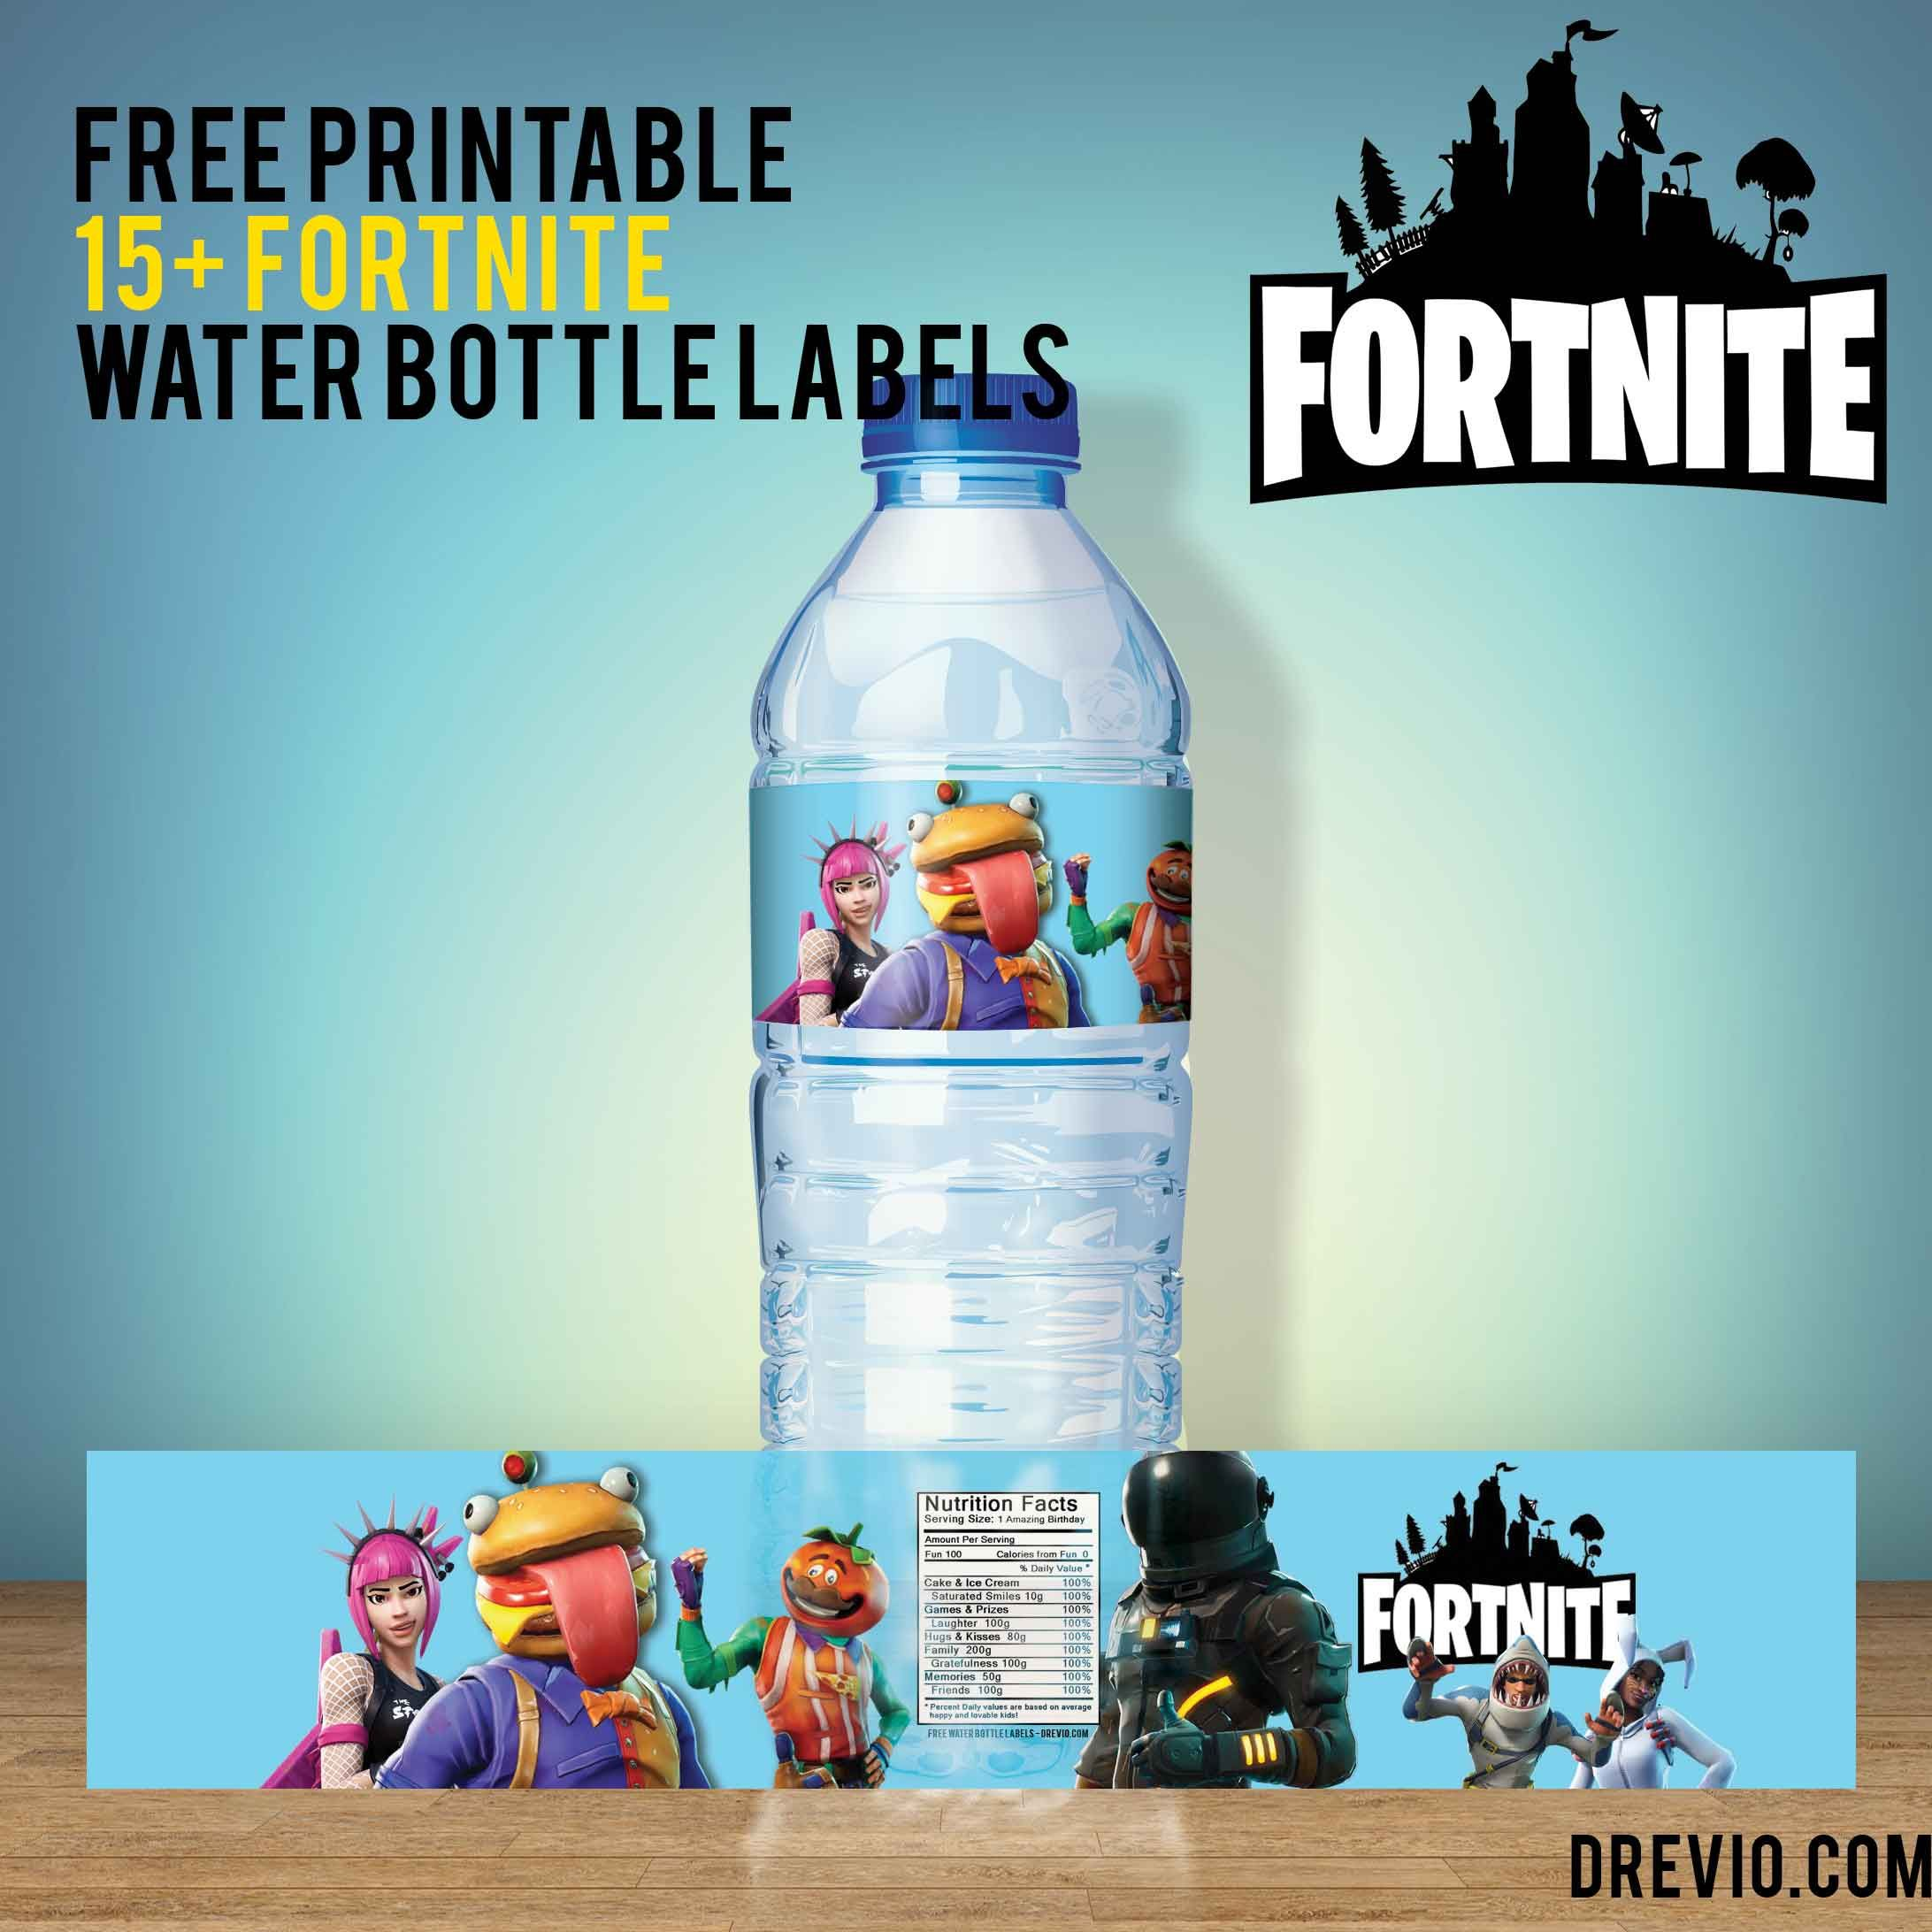 image about Free Fortnite Printable Labels named 15+ Totally free Fortnite Drinking water Bottle Labels Cost-free Printable